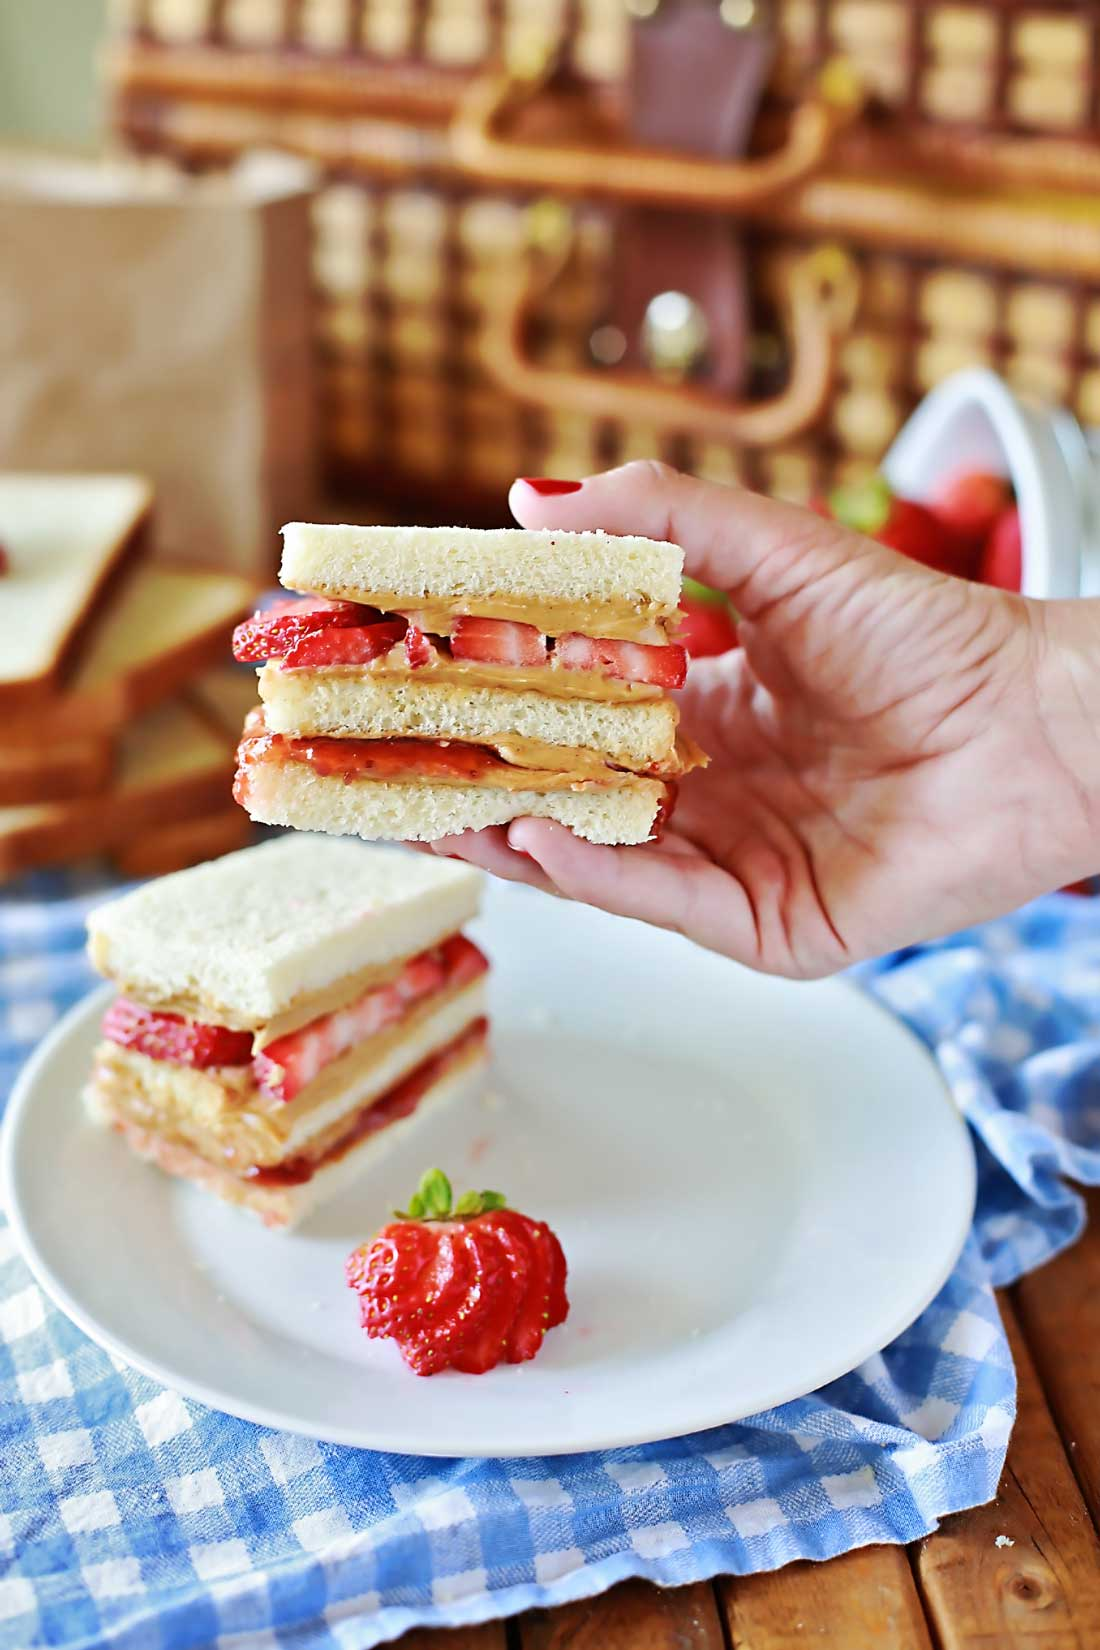 Power their day the right way and send your kids back to school with the ultimate PB&J!